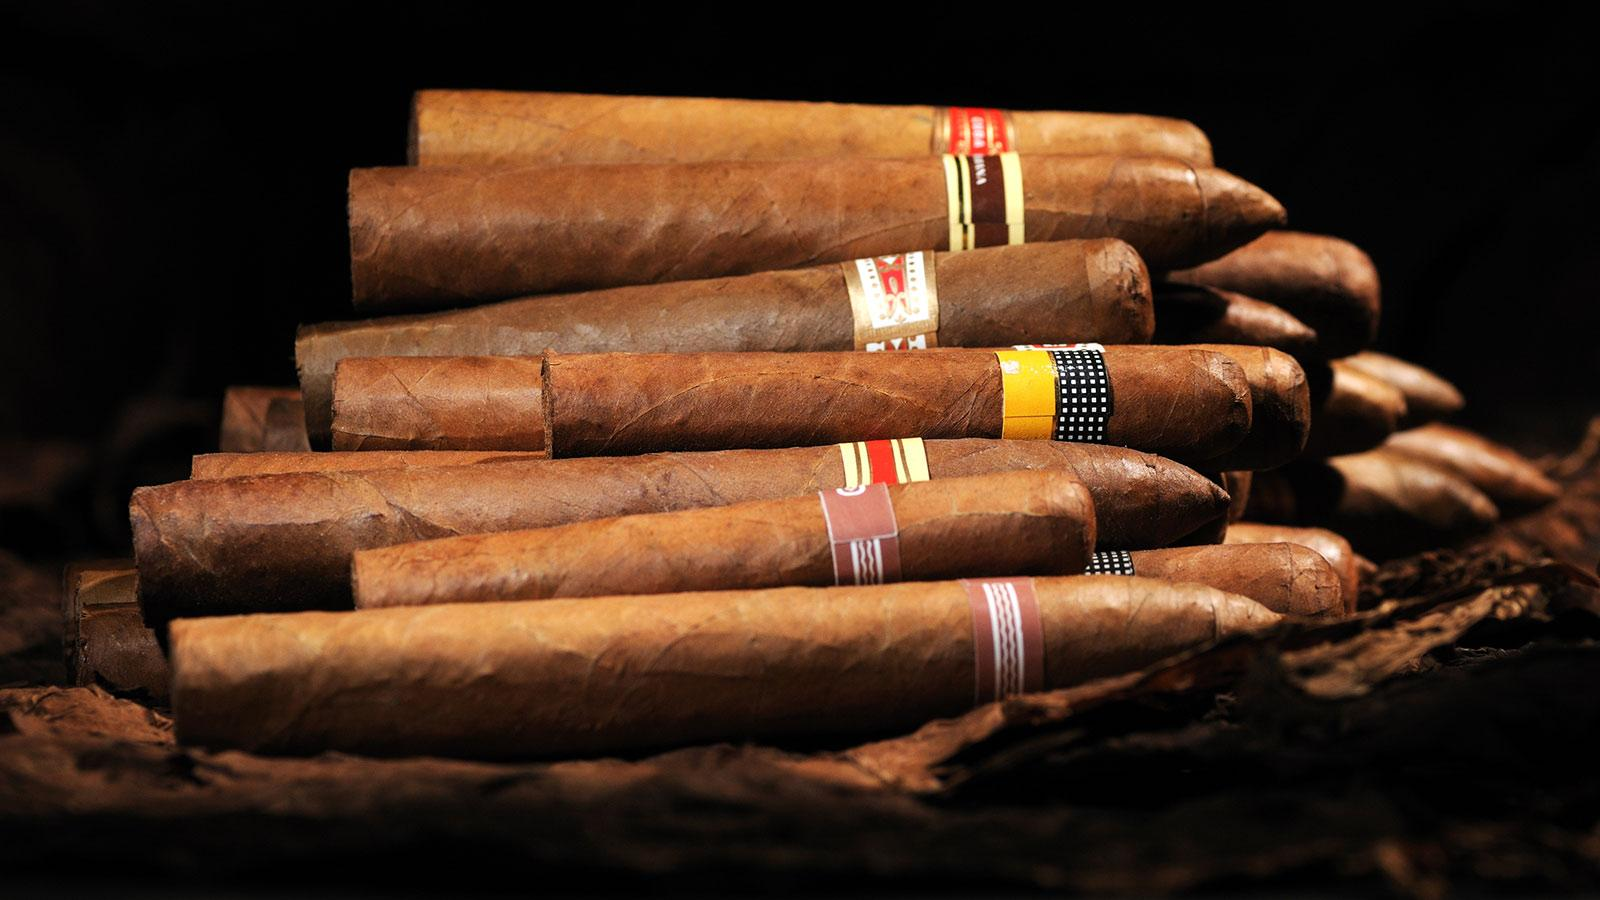 Do I Need To Rotate The Cigars In My Humidor?